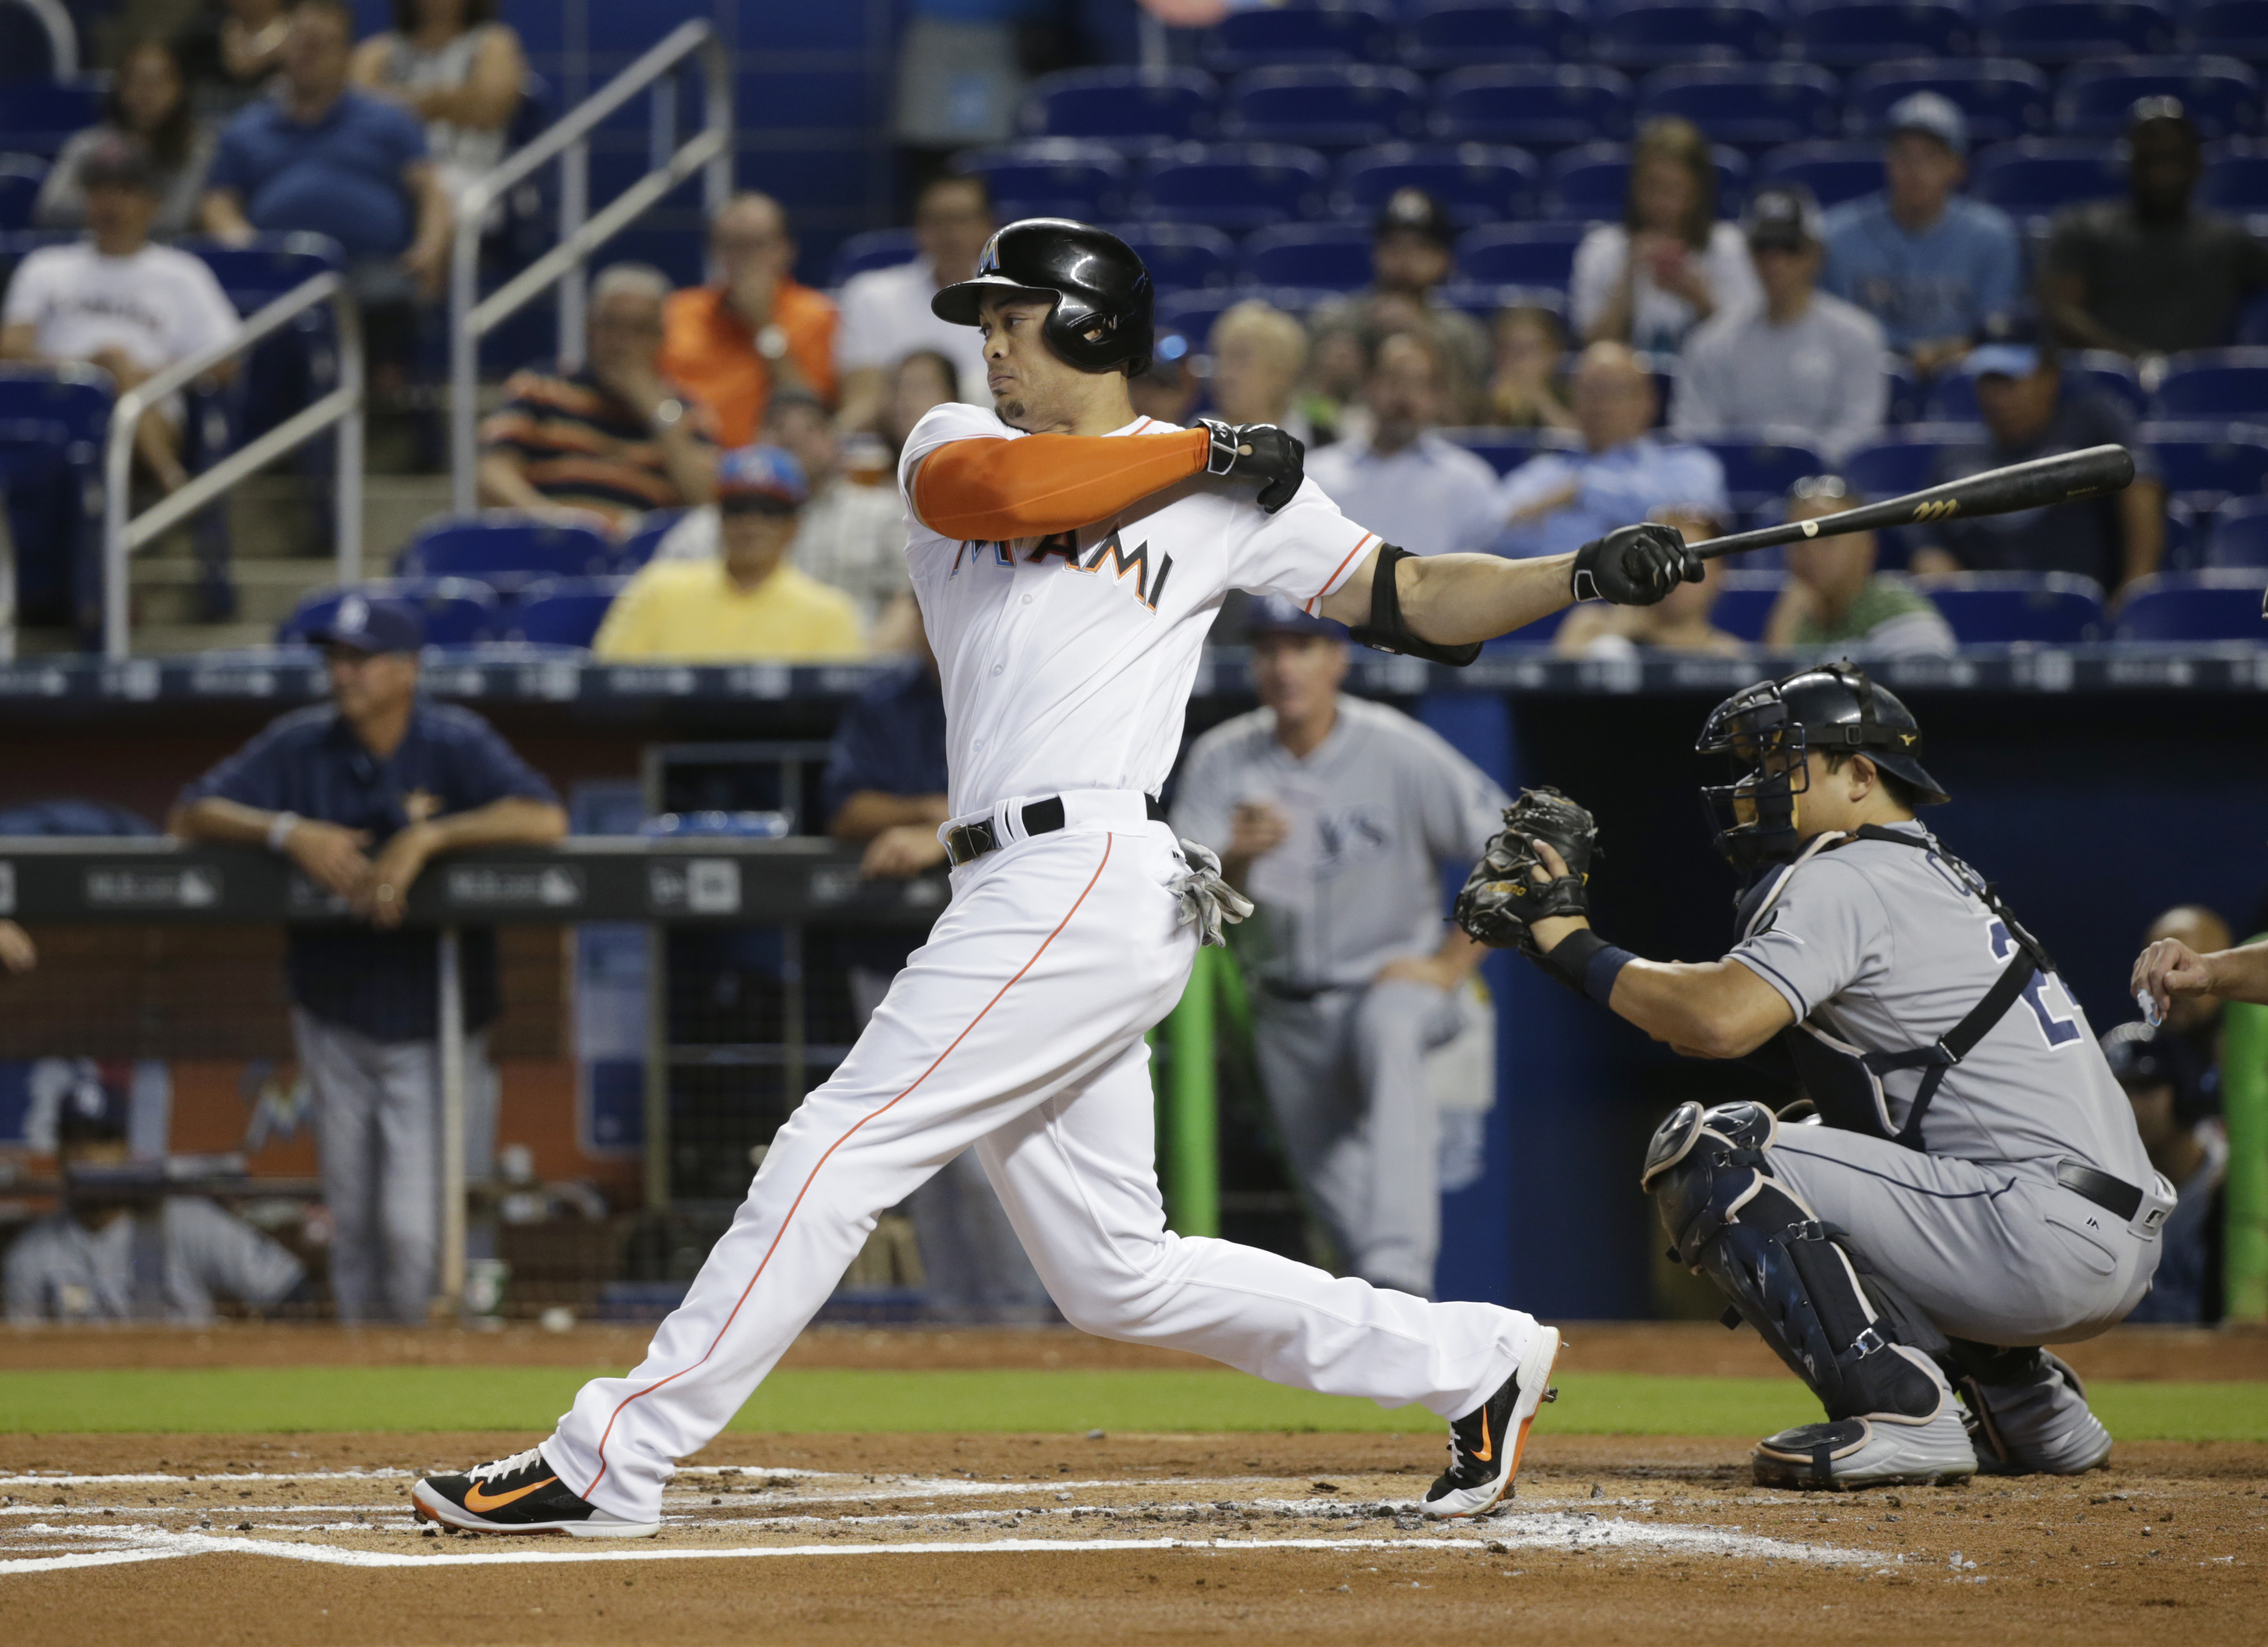 Miami Marlins' Giancarlo Stanton strikes out during the first inning of a baseball game against the Tampa Bay Rays, Tuesday, May 24, 2016, in Miami. (AP Photo/Wilfredo Lee)